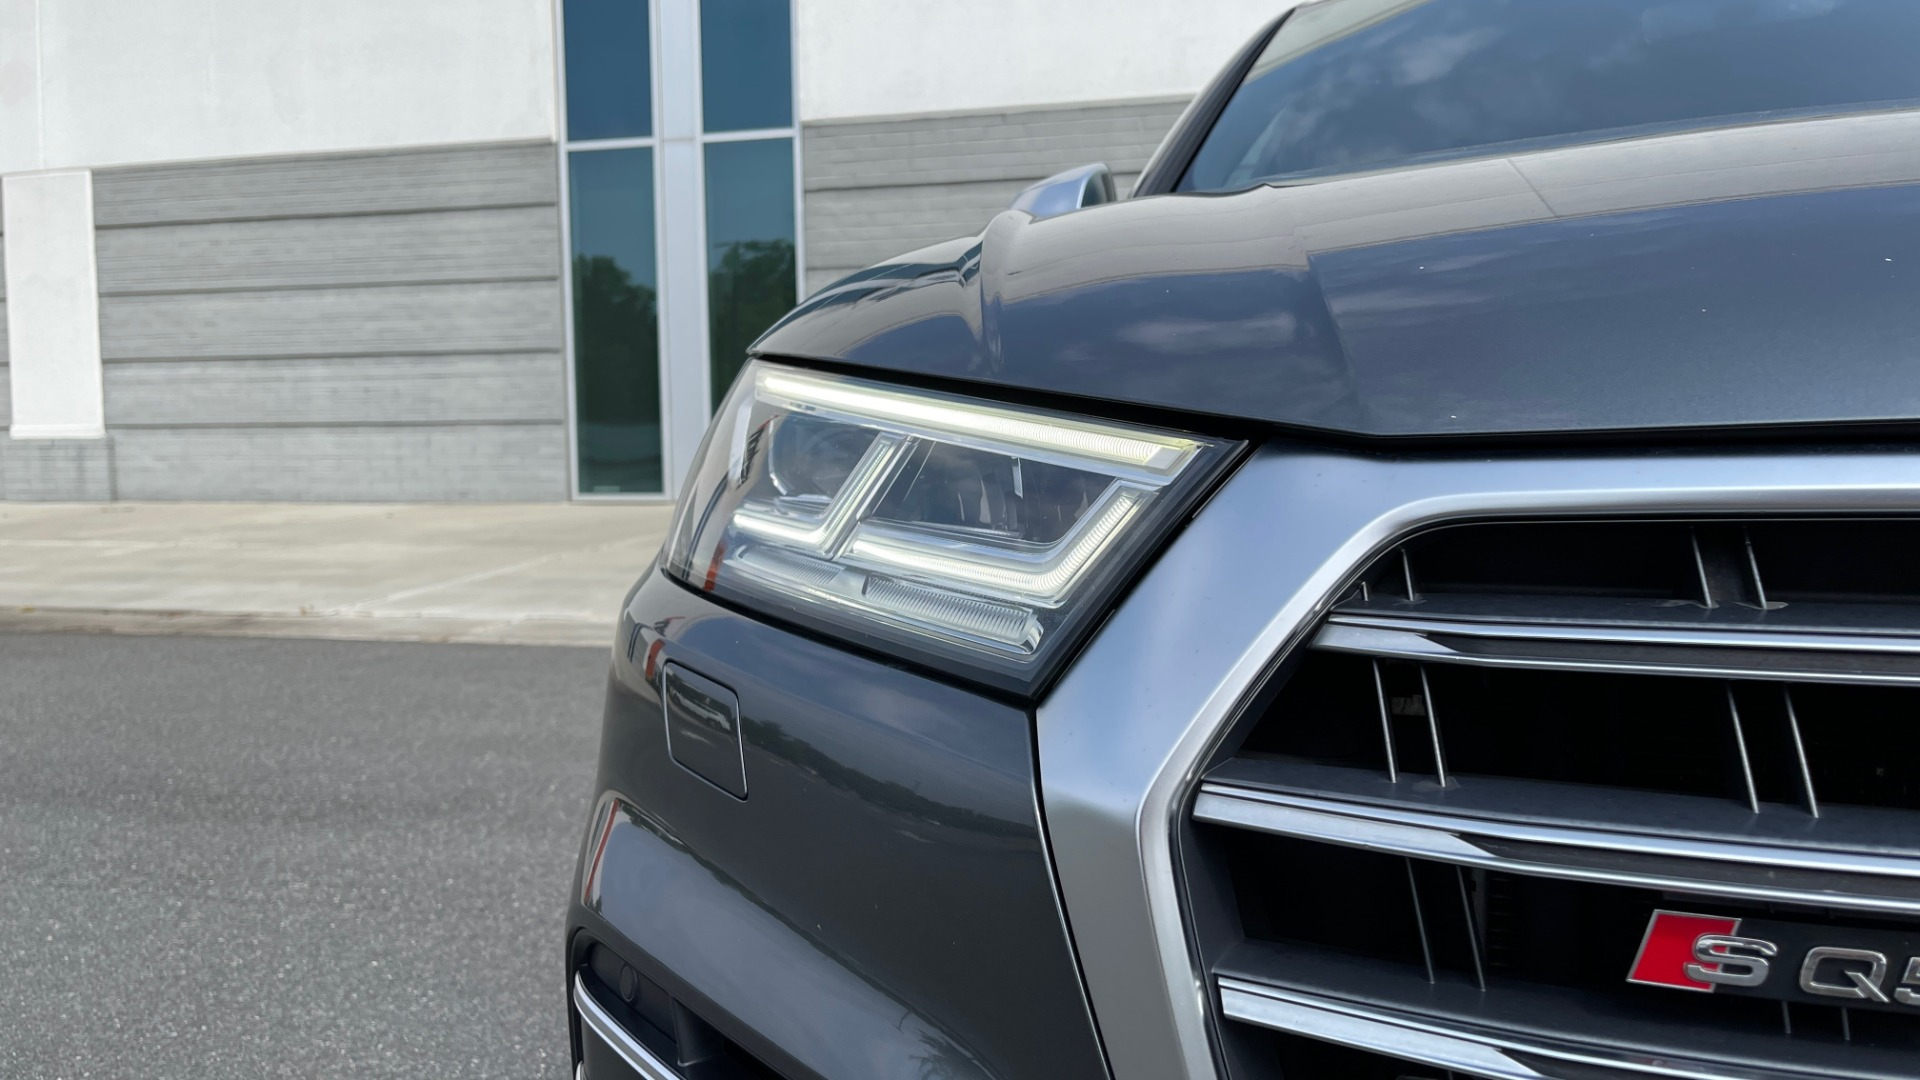 Used 2018 Audi SQ5 PREMIUM PLUS / S-SPORT / NAV / B&O SND / SUNROOF / REARVIEW for sale $43,995 at Formula Imports in Charlotte NC 28227 12